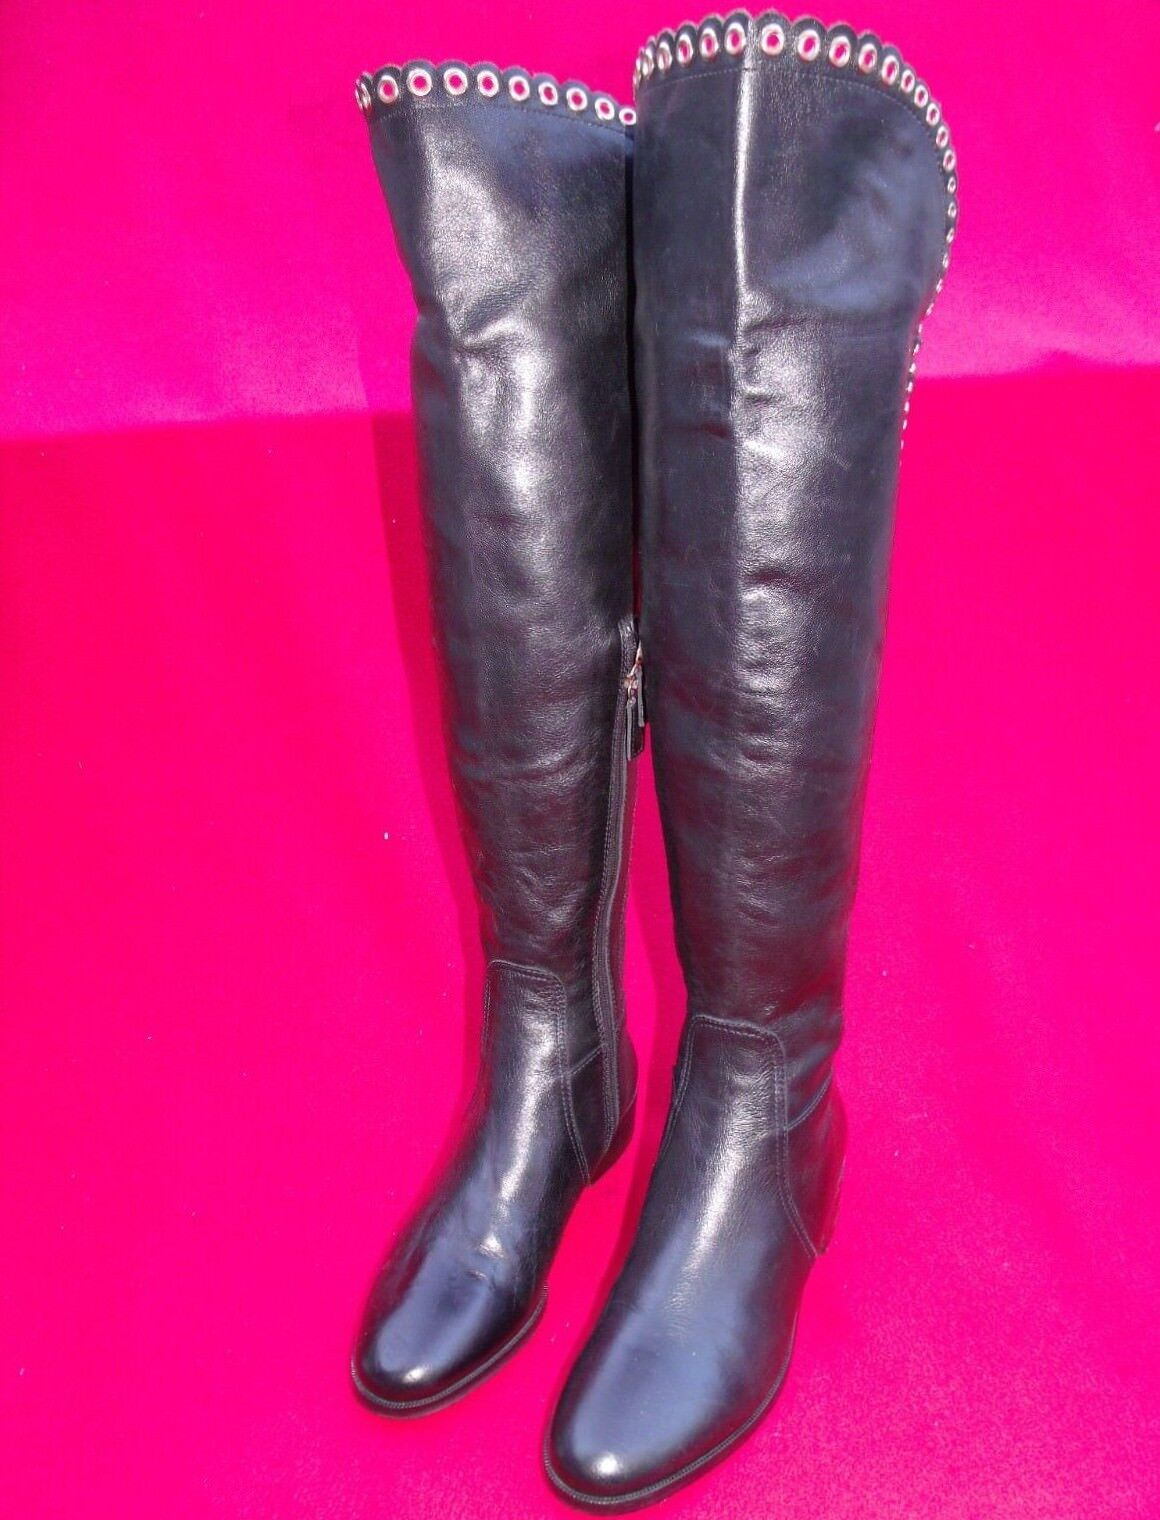 Davos Gomma Black Leather Boots Size US 5.5 Made in